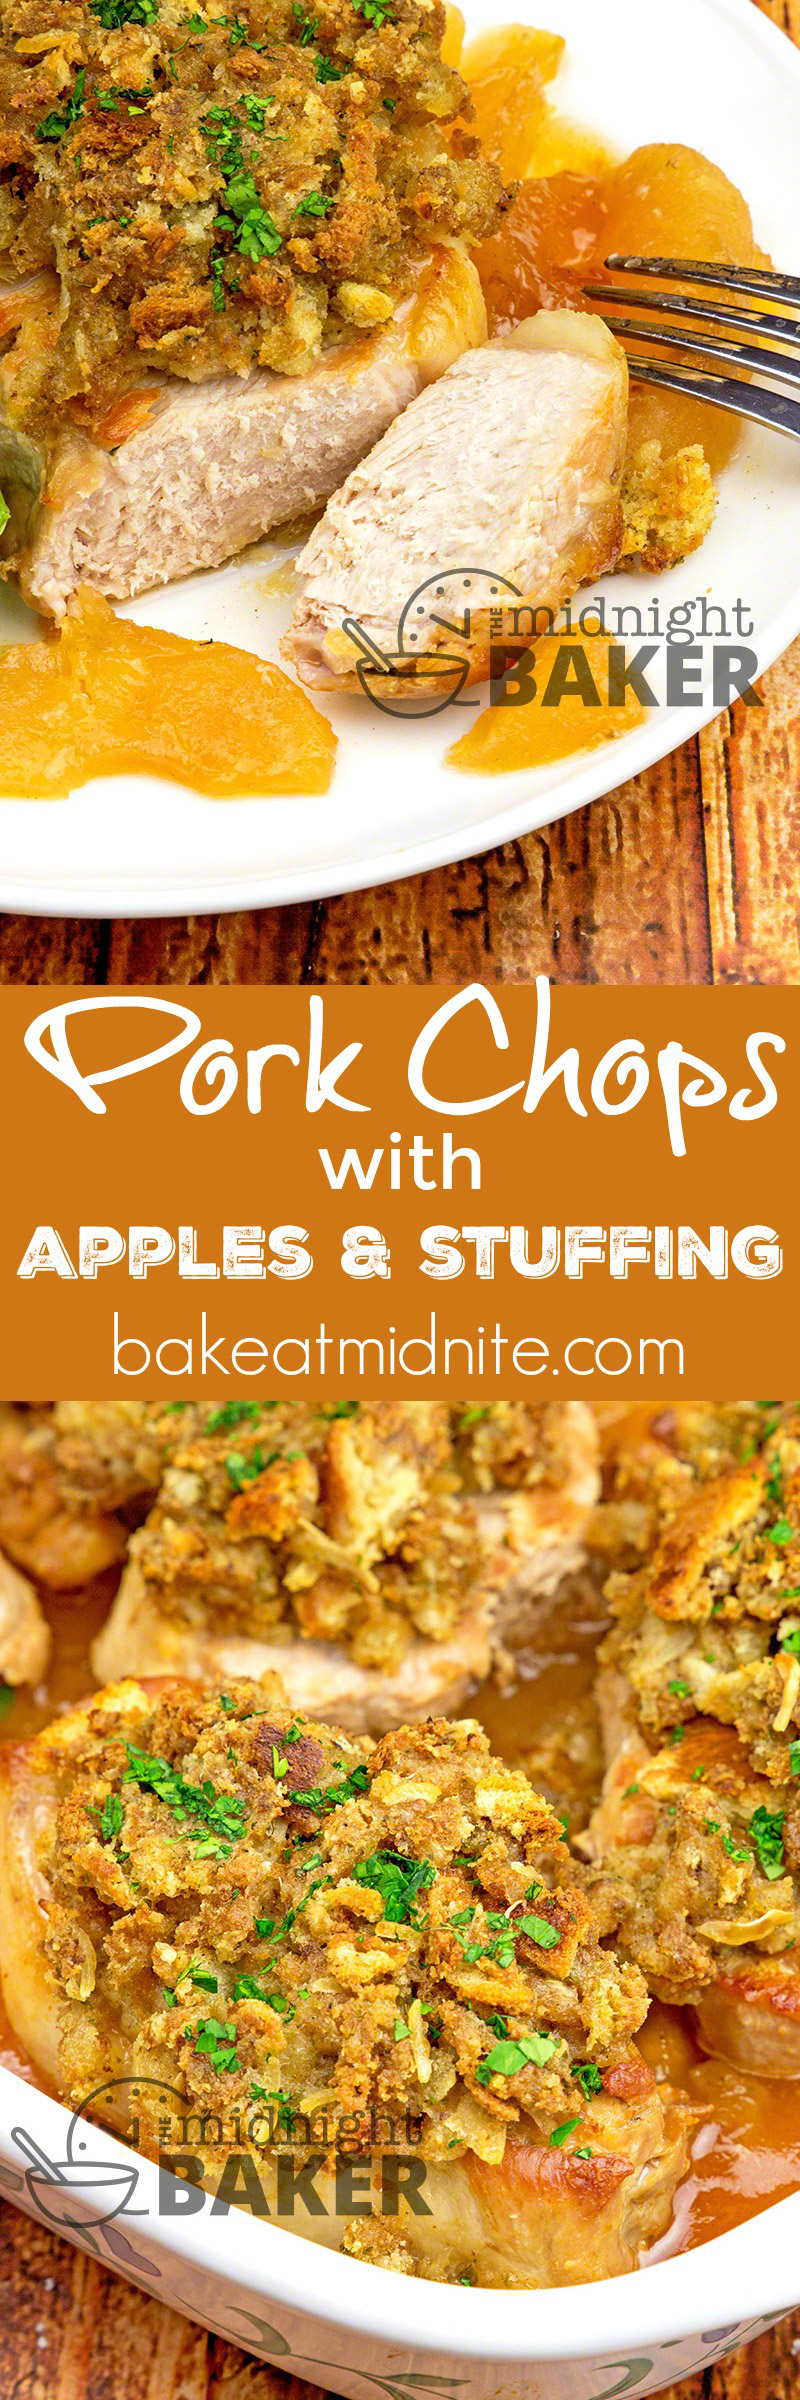 Pork Chops with Apples & Stuffing - The Midnight Baker